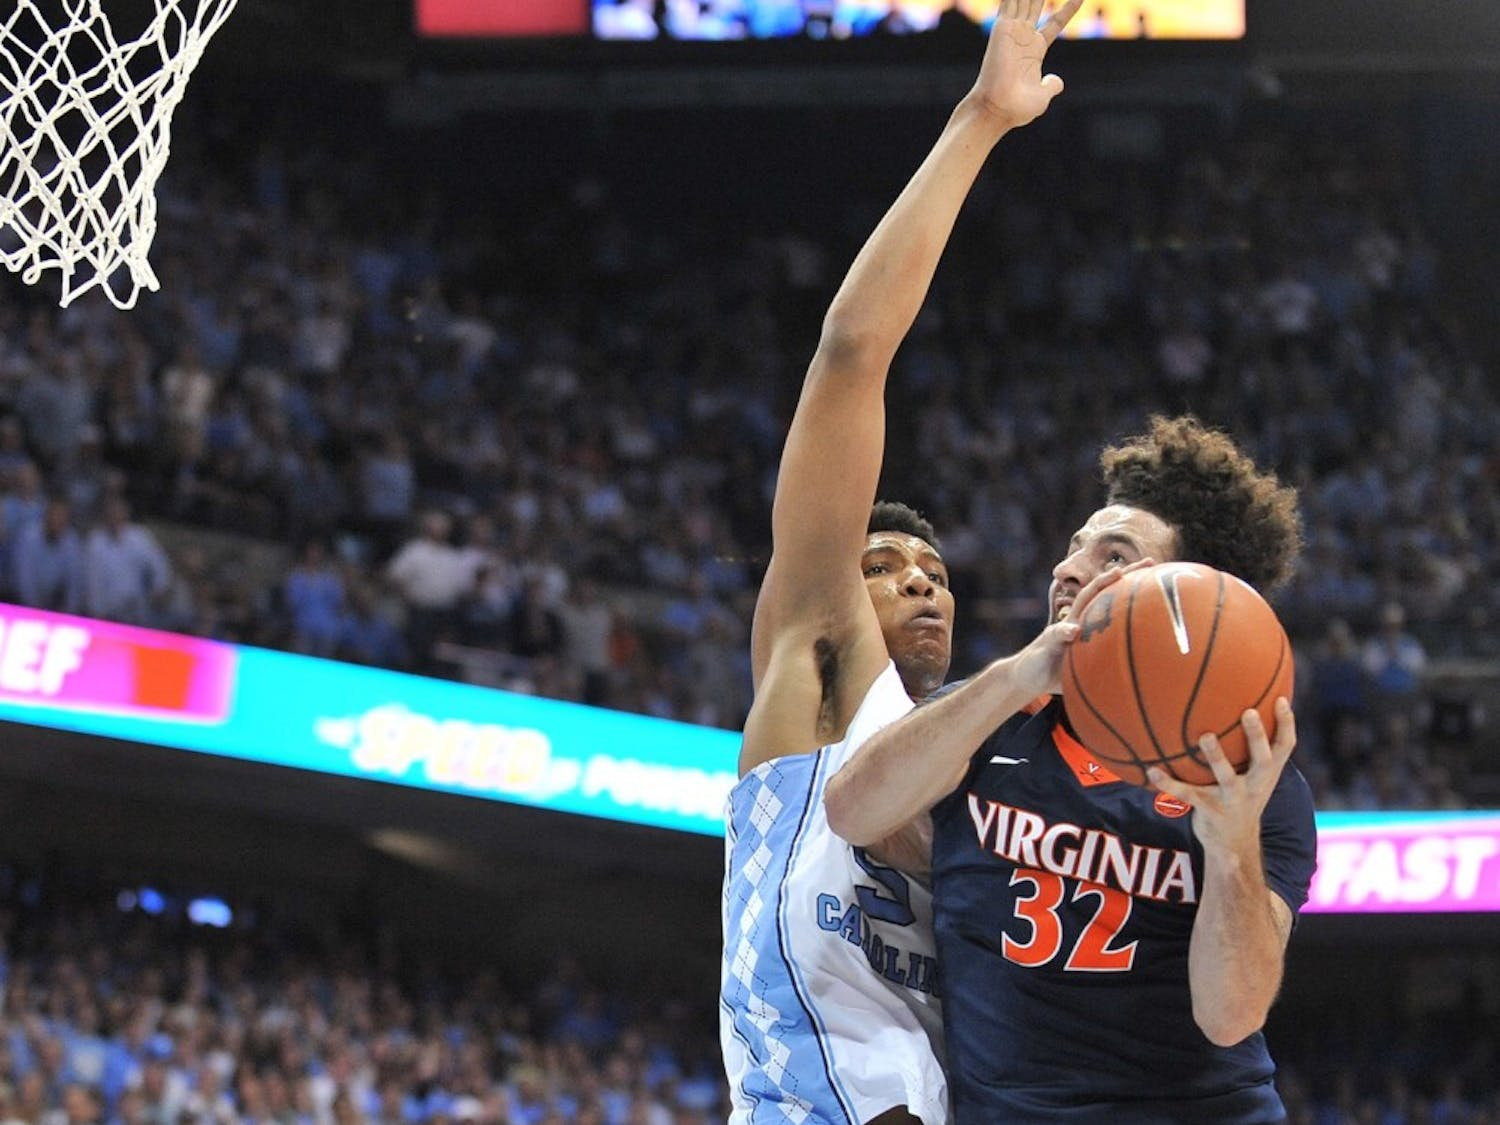 No. 10 North Carolina forward Tony Bradley (5) reaches up in an attempt to block No. 14 Virginia guard London Perrantes (32) during Saturday night's game in the Smith Center.